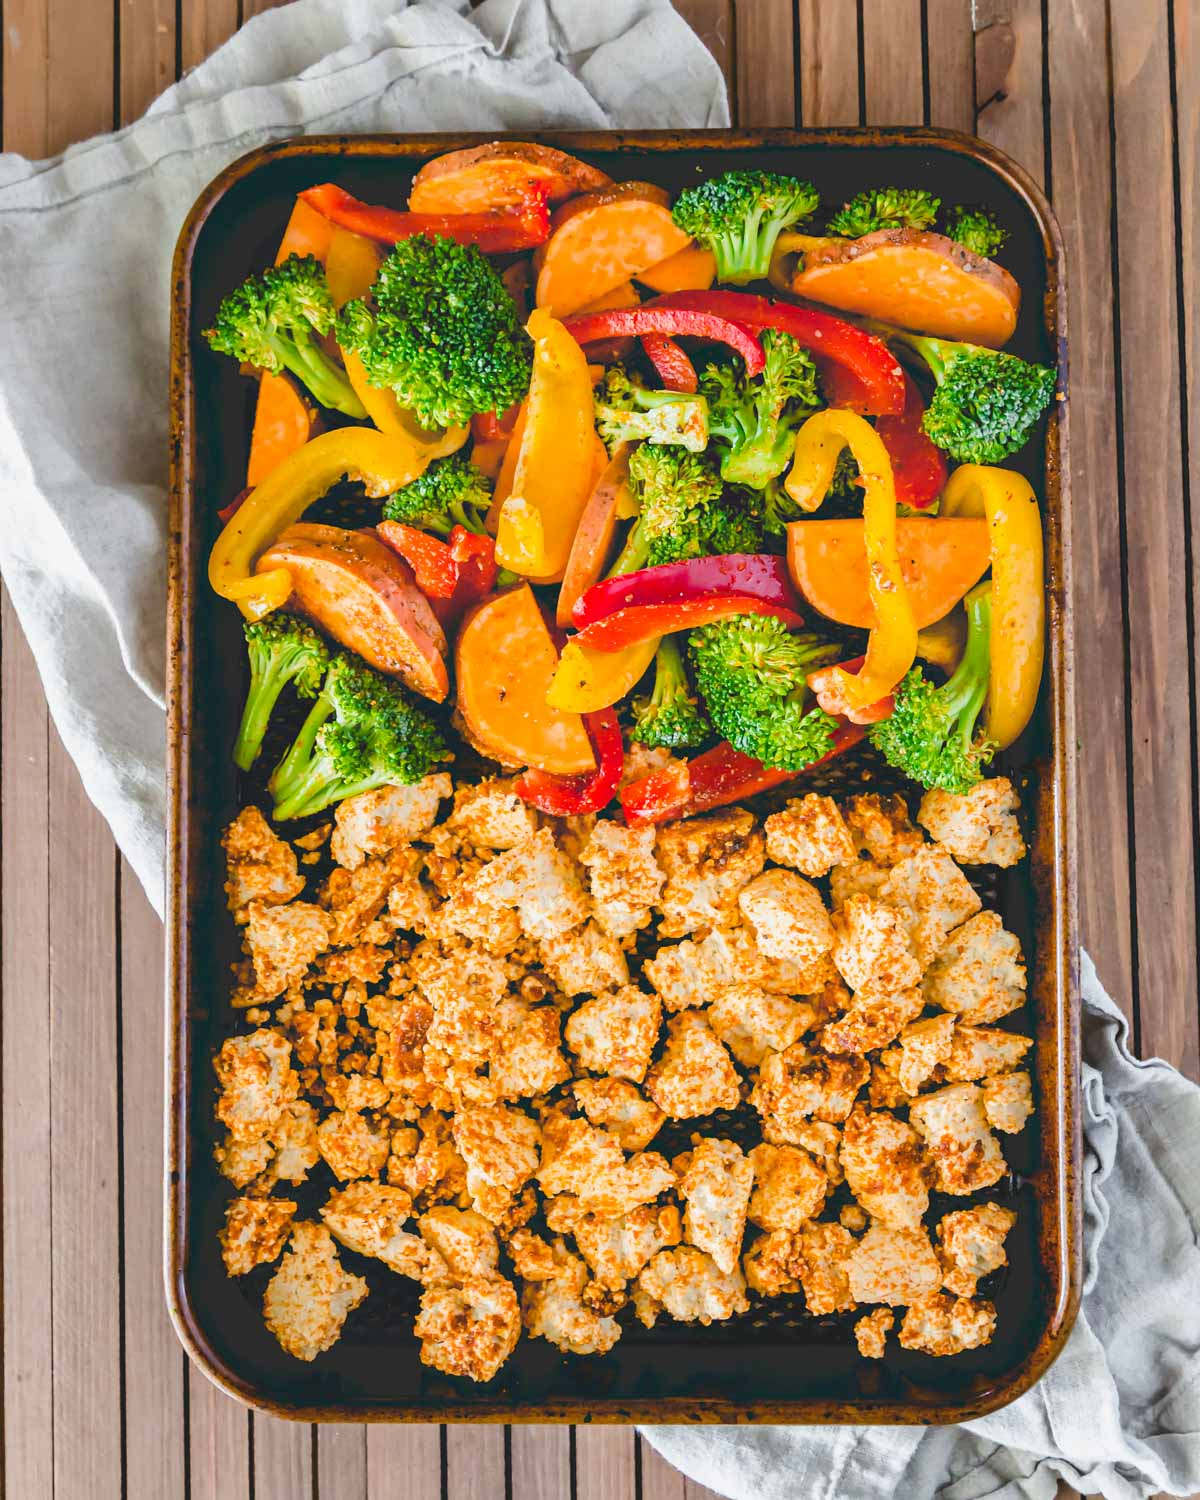 BBQ tofu sheet pan dinner prepped and ready to be baked in the oven.